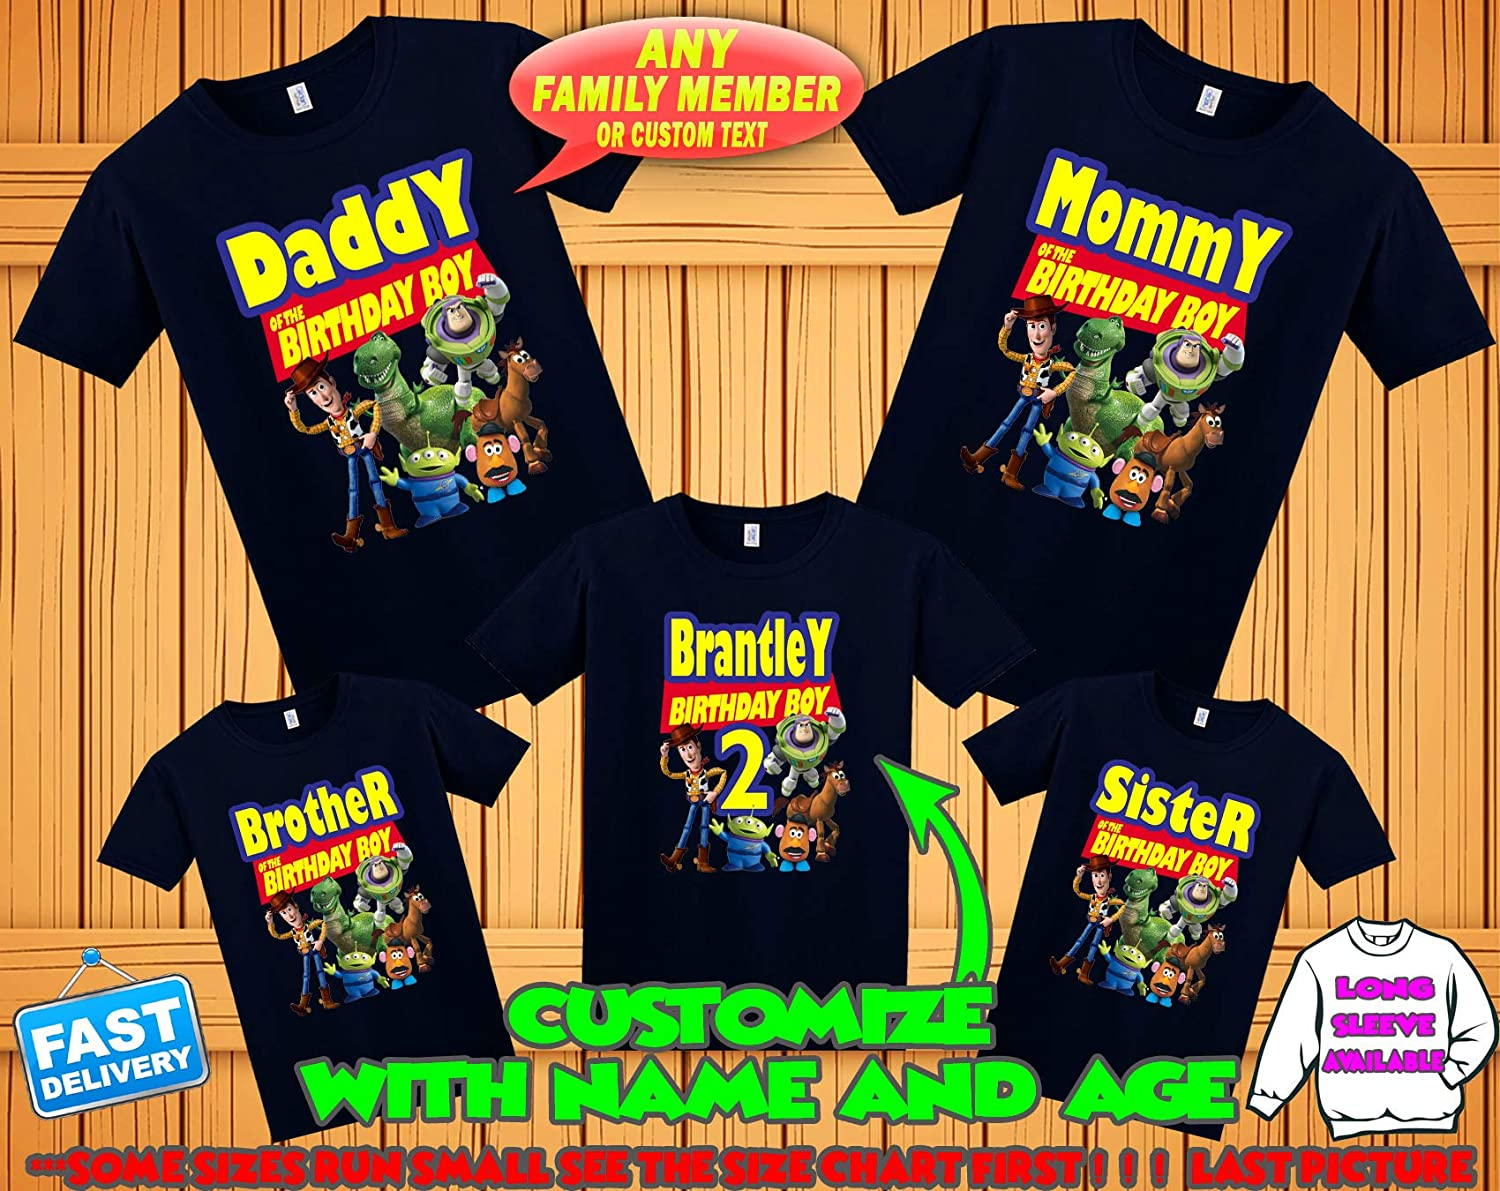 b6cbcee6e987f Toy Story Birthday Shirt, Toy Story Custom Shirt, PersonalizedToy Story  Shirt,Toy Story family shirts, Birthday t-shirt for girls and boys